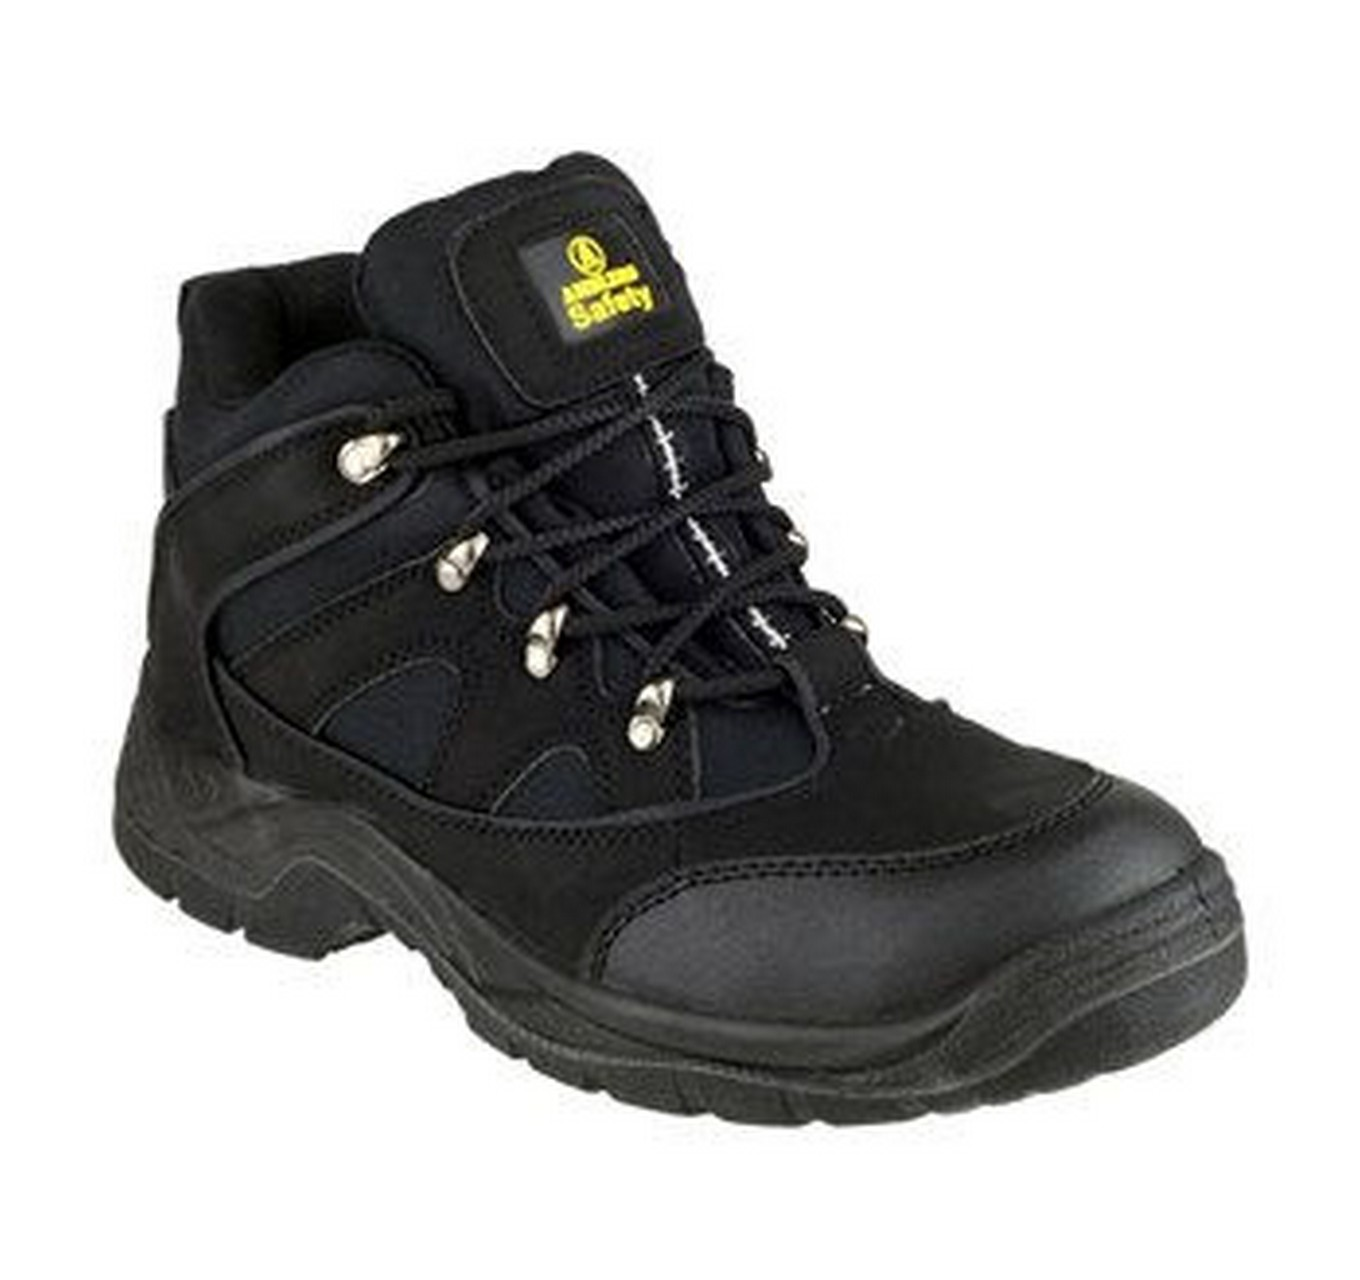 Safety Boot Amblers Fs151 7